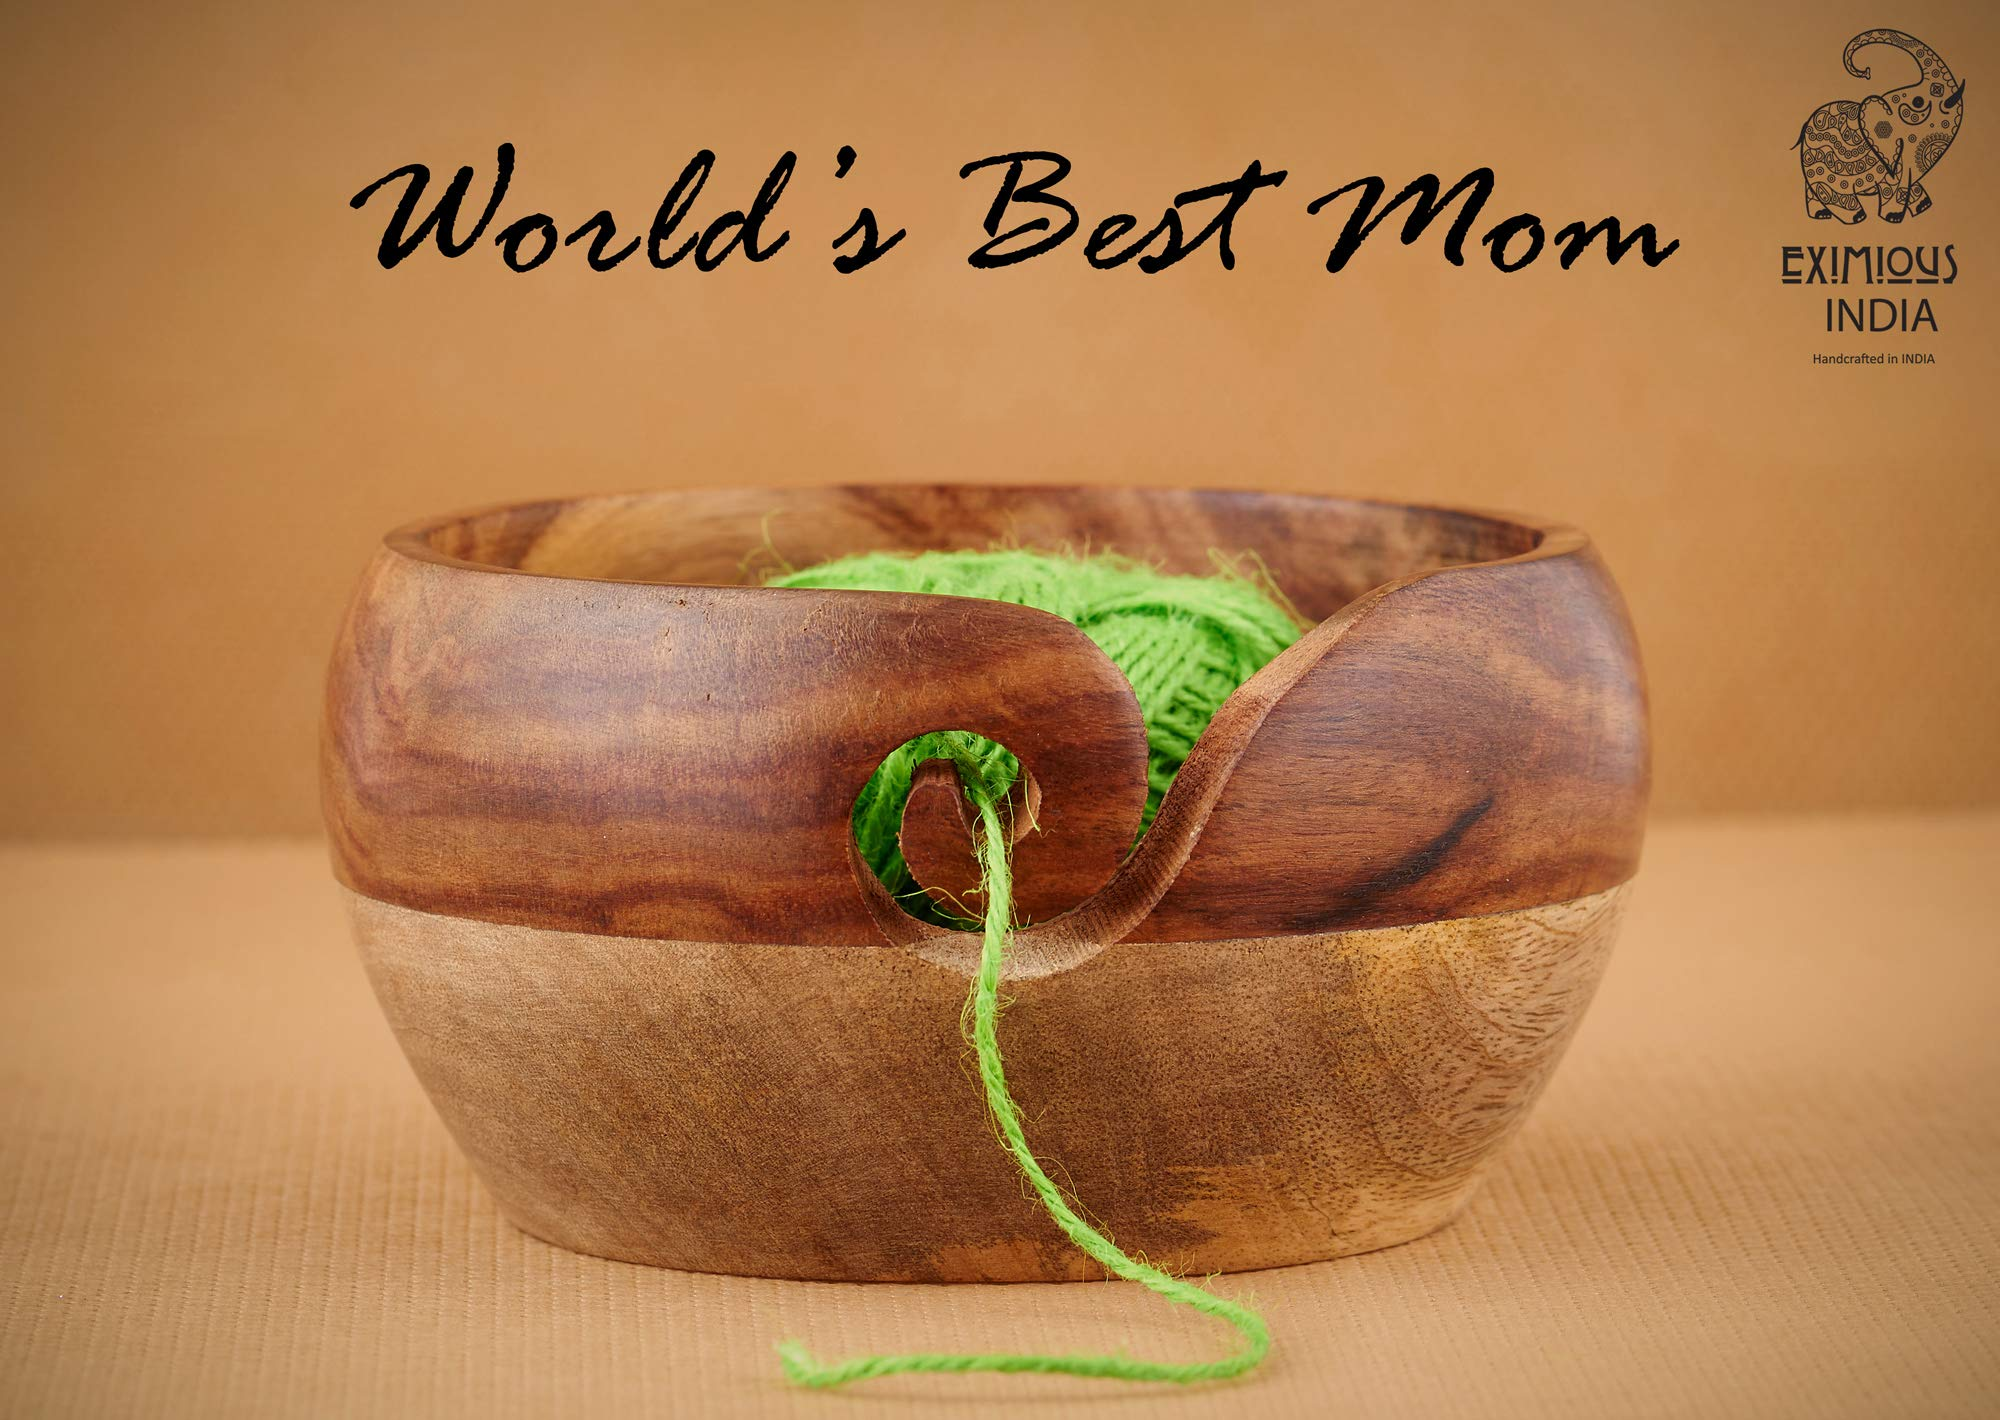 Mother's Day Special Wooden Yarn Bowl for Knitting and Crochet, Large Size 6'' X 3'' Durable and Portable Yarn Storage for Knitters- Beautiful Gift for Mom, Grandmother